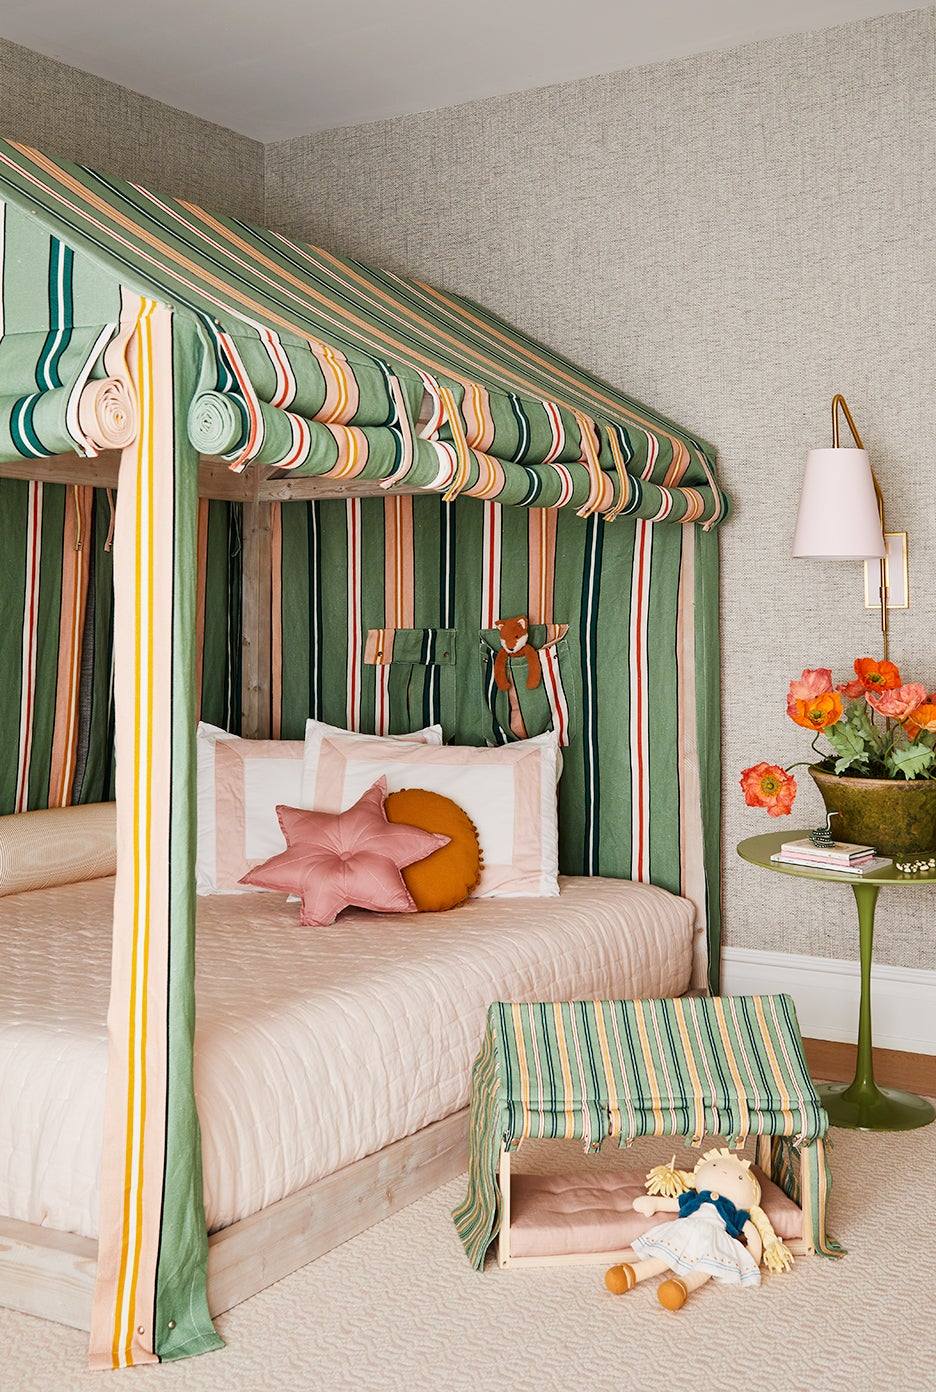 00-FEATURE-Tented-Little-Girl_s-Room-Inspired-Madeline-domino